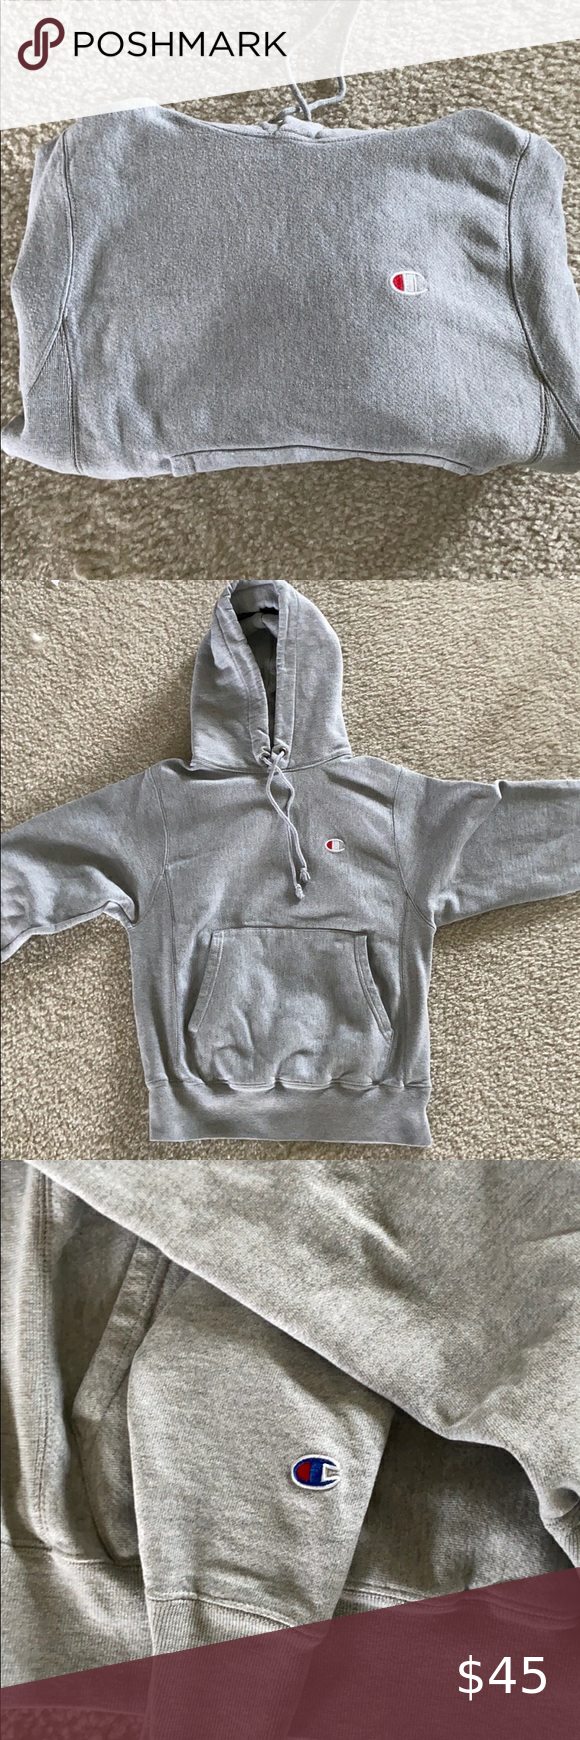 Grey Champion Hoodie Grey Champion Hoodie Fairly New Worn one or twice Champion Other #championhoodie Grey Champion Hoodie Grey Champion Hoodie Fairly New Worn one or twice Champion Other